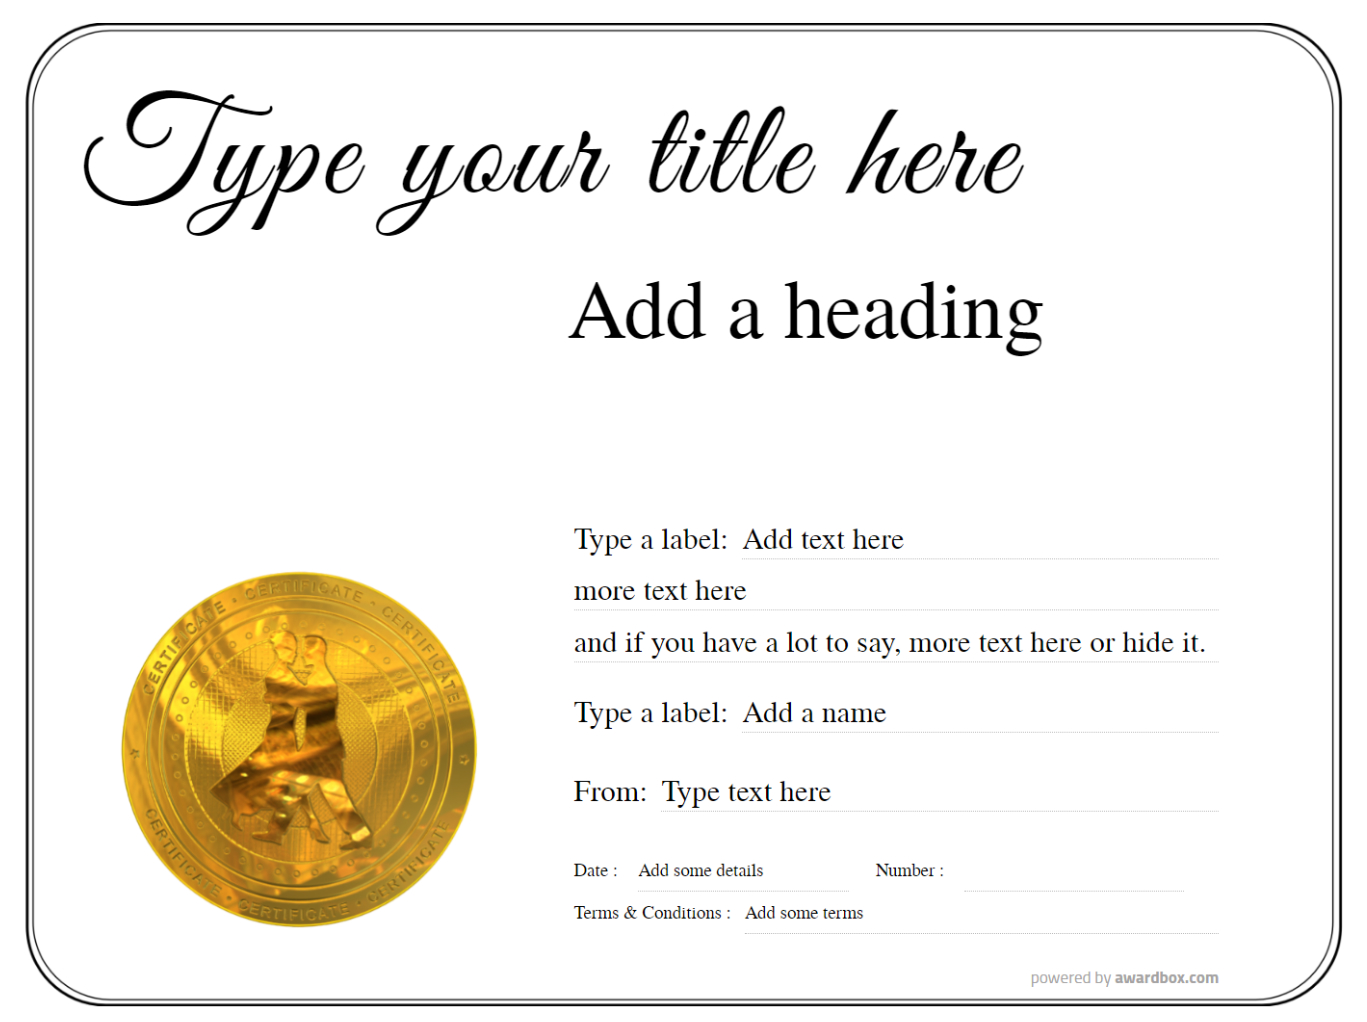 a dance gift certificate customizable template with gold medal badge on a mainly white background with simple border